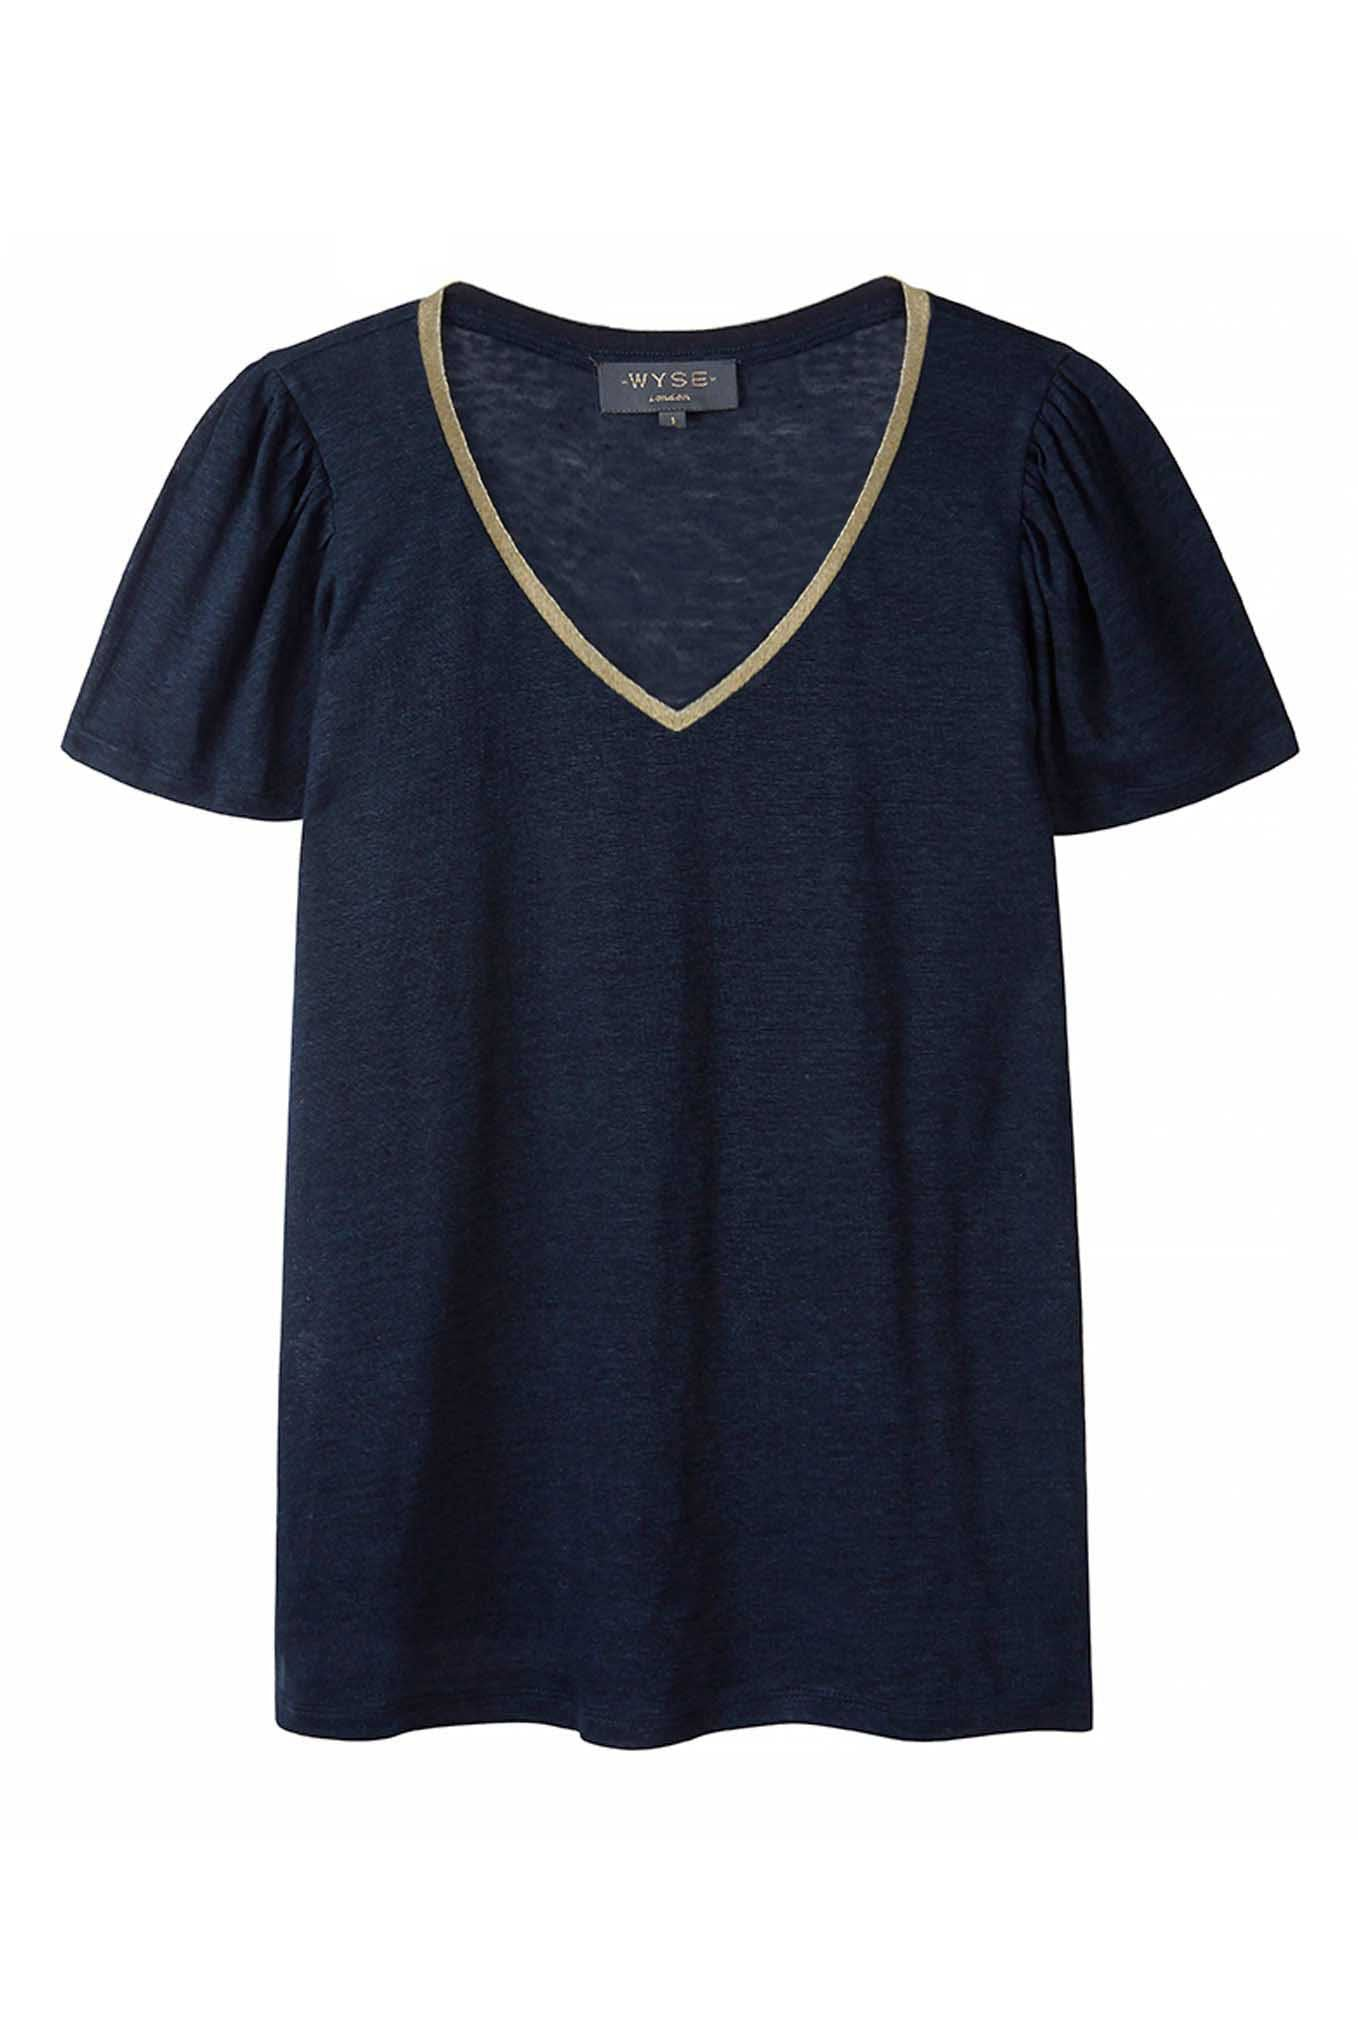 Lily V Neck Lurex Trim Tee - Navy